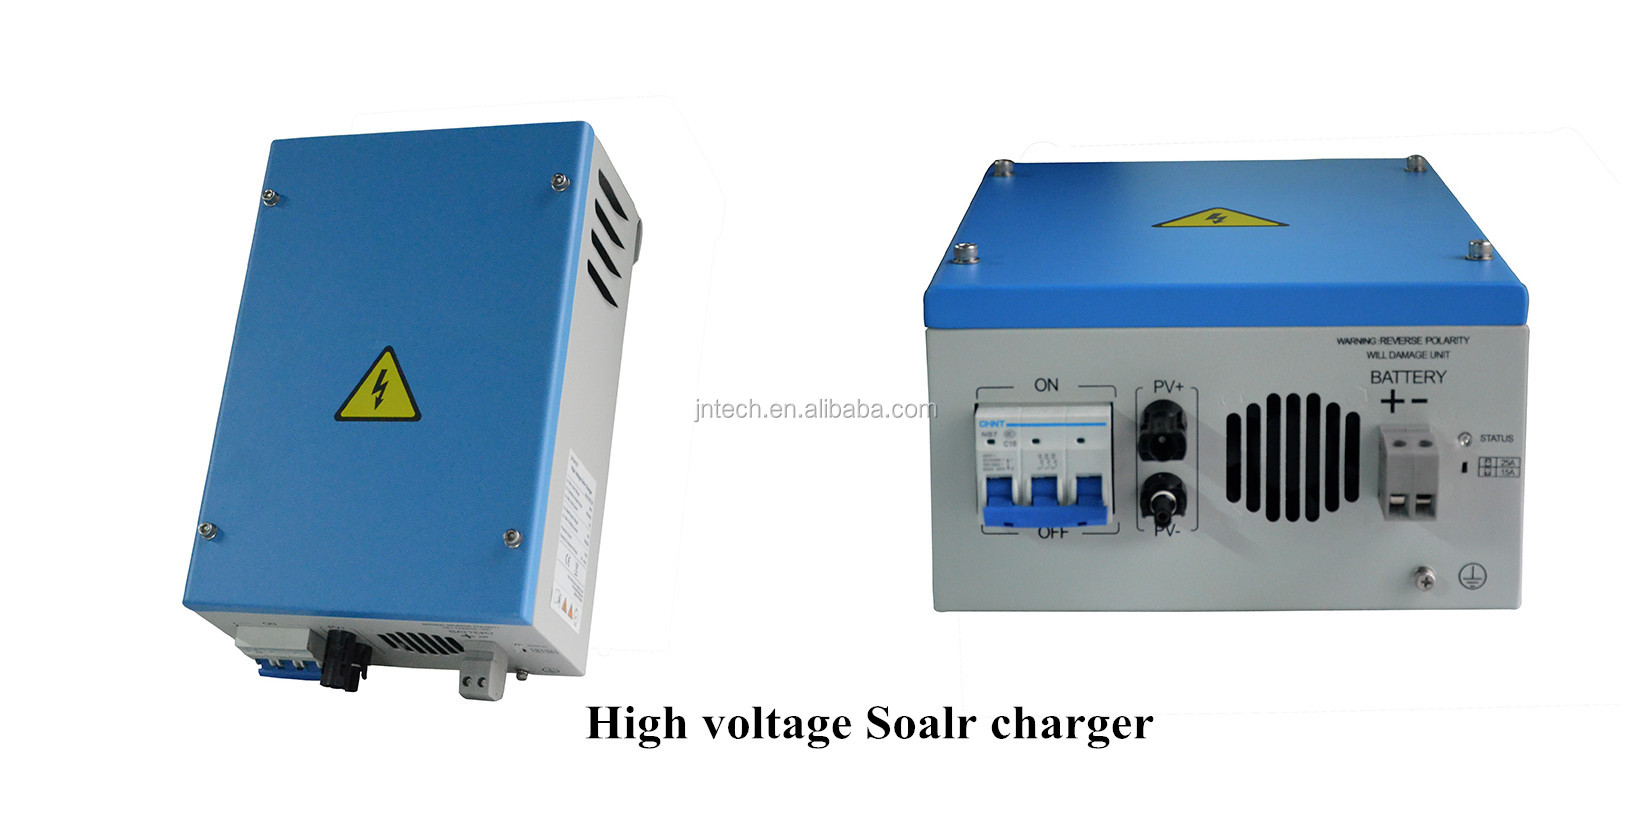 High voltage charger_.jpg